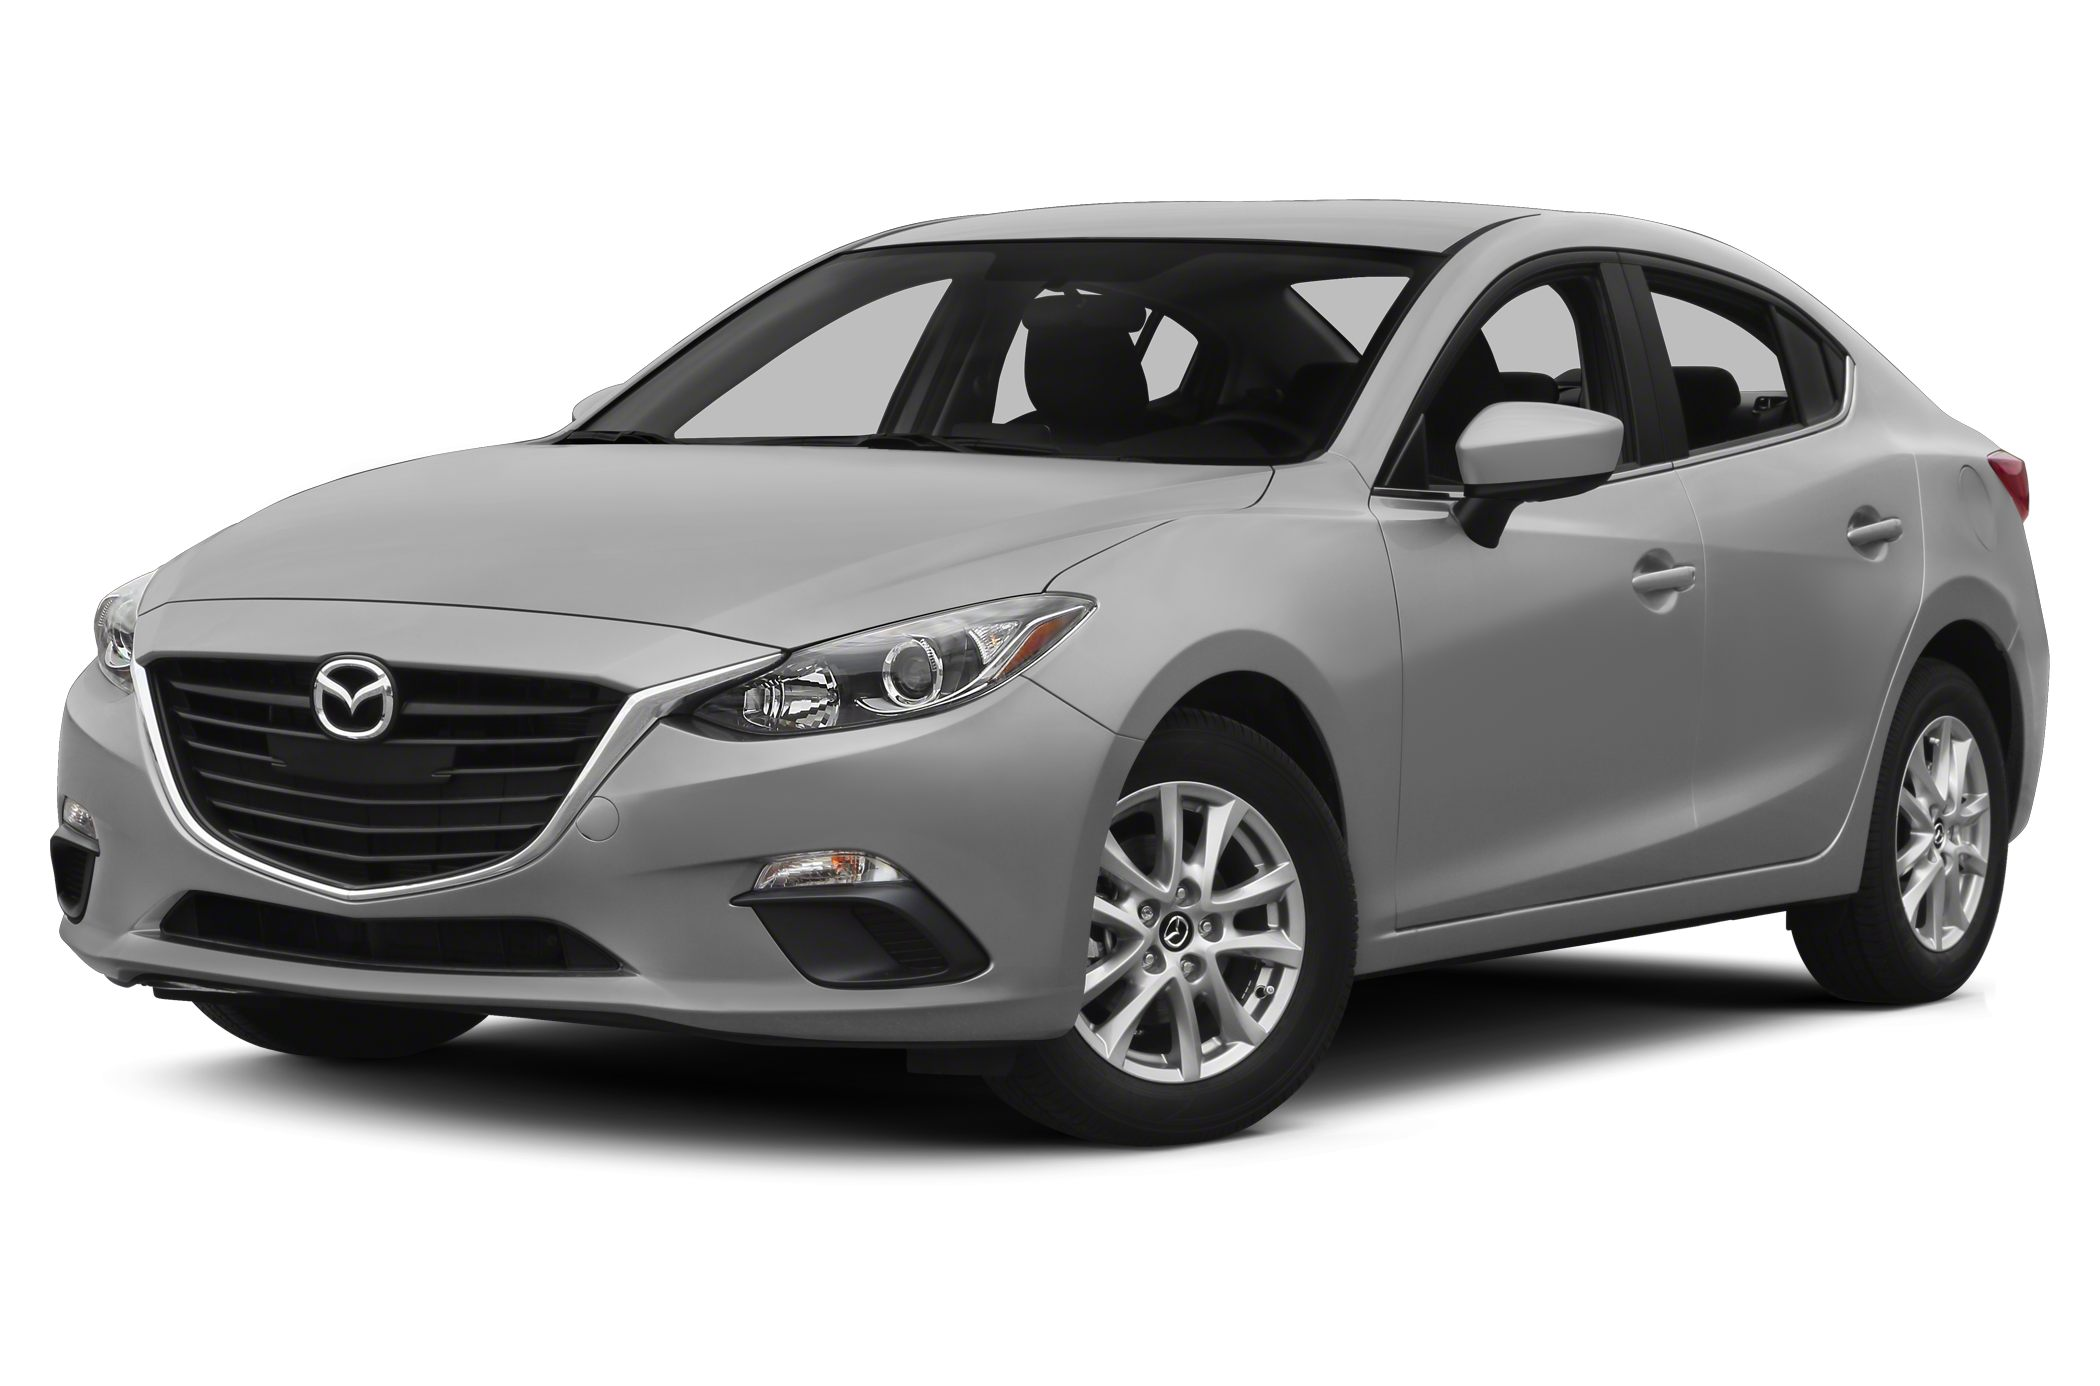 2015 Mazda Mazda3 S Touring Hatchback for sale in Mentor for $26,190 with 0 miles.